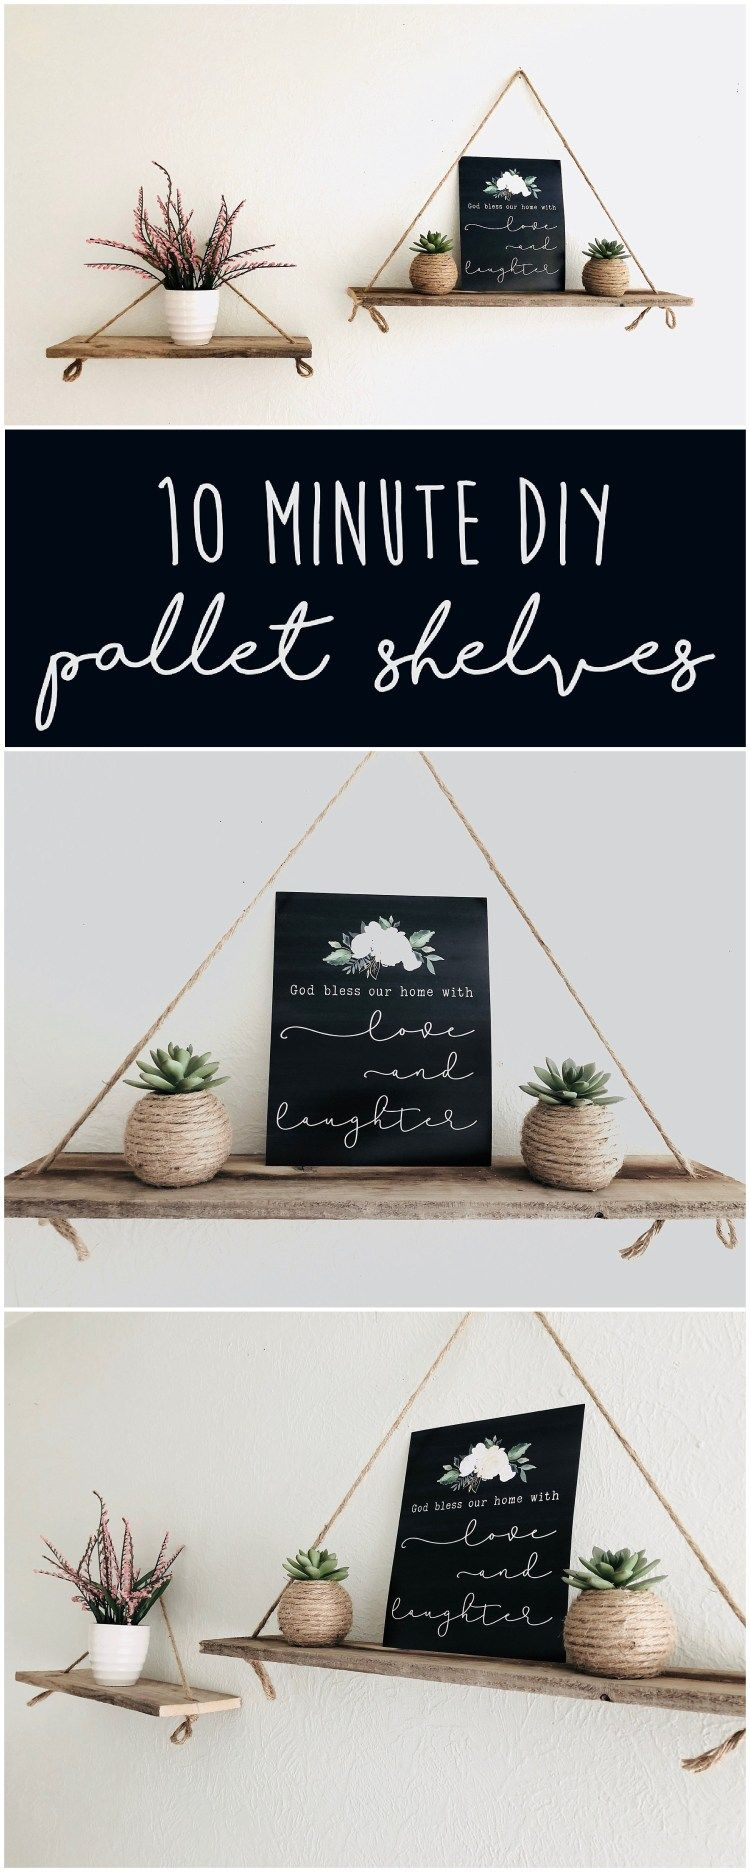 Easy DIY Pallet Shelves - Six Clever Sisters